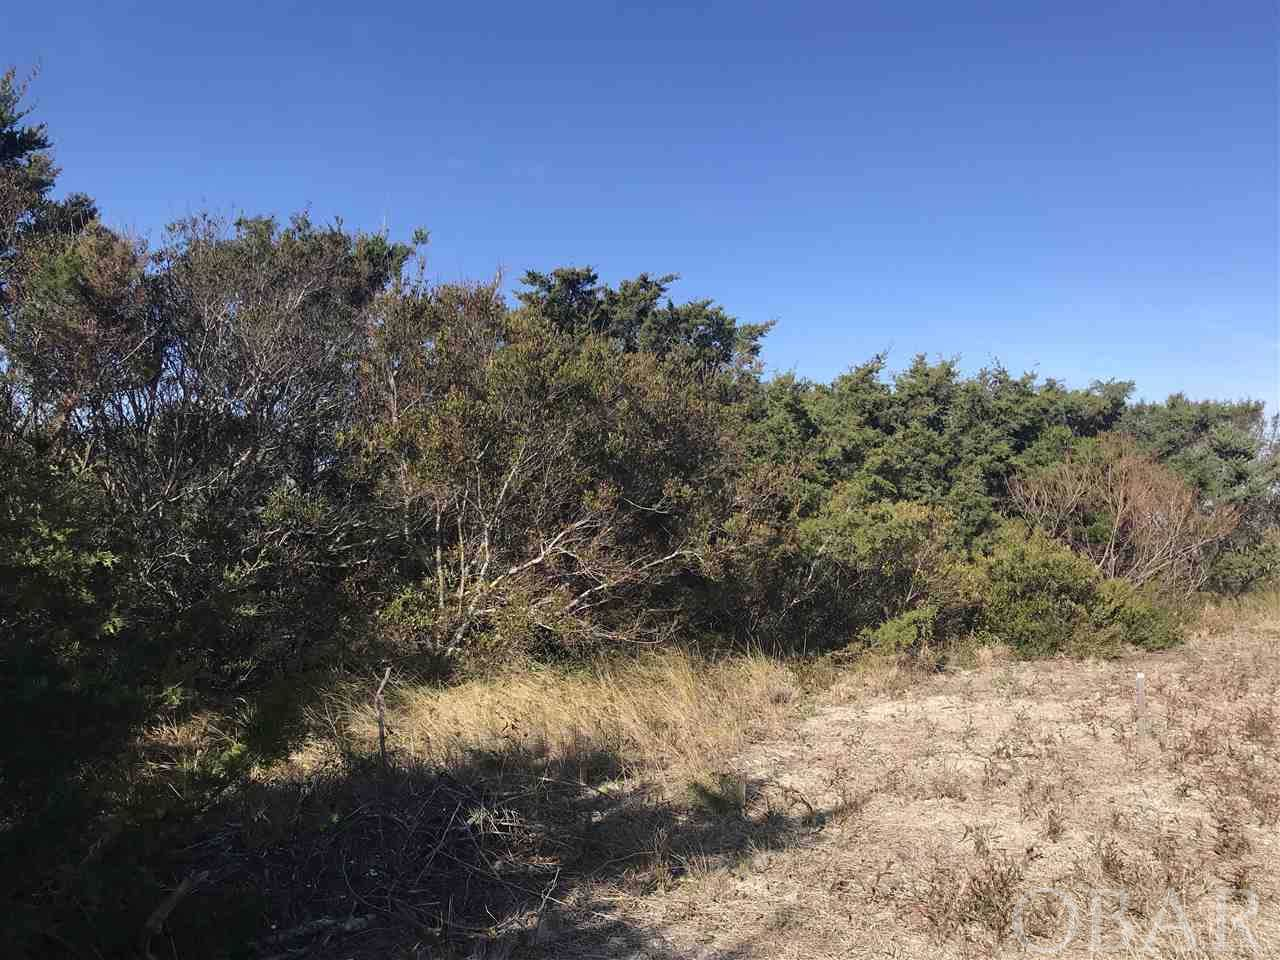 https://bt-photos.global.ssl.fastly.net/obxmls/orig_boomver_1_101582-2.jpg